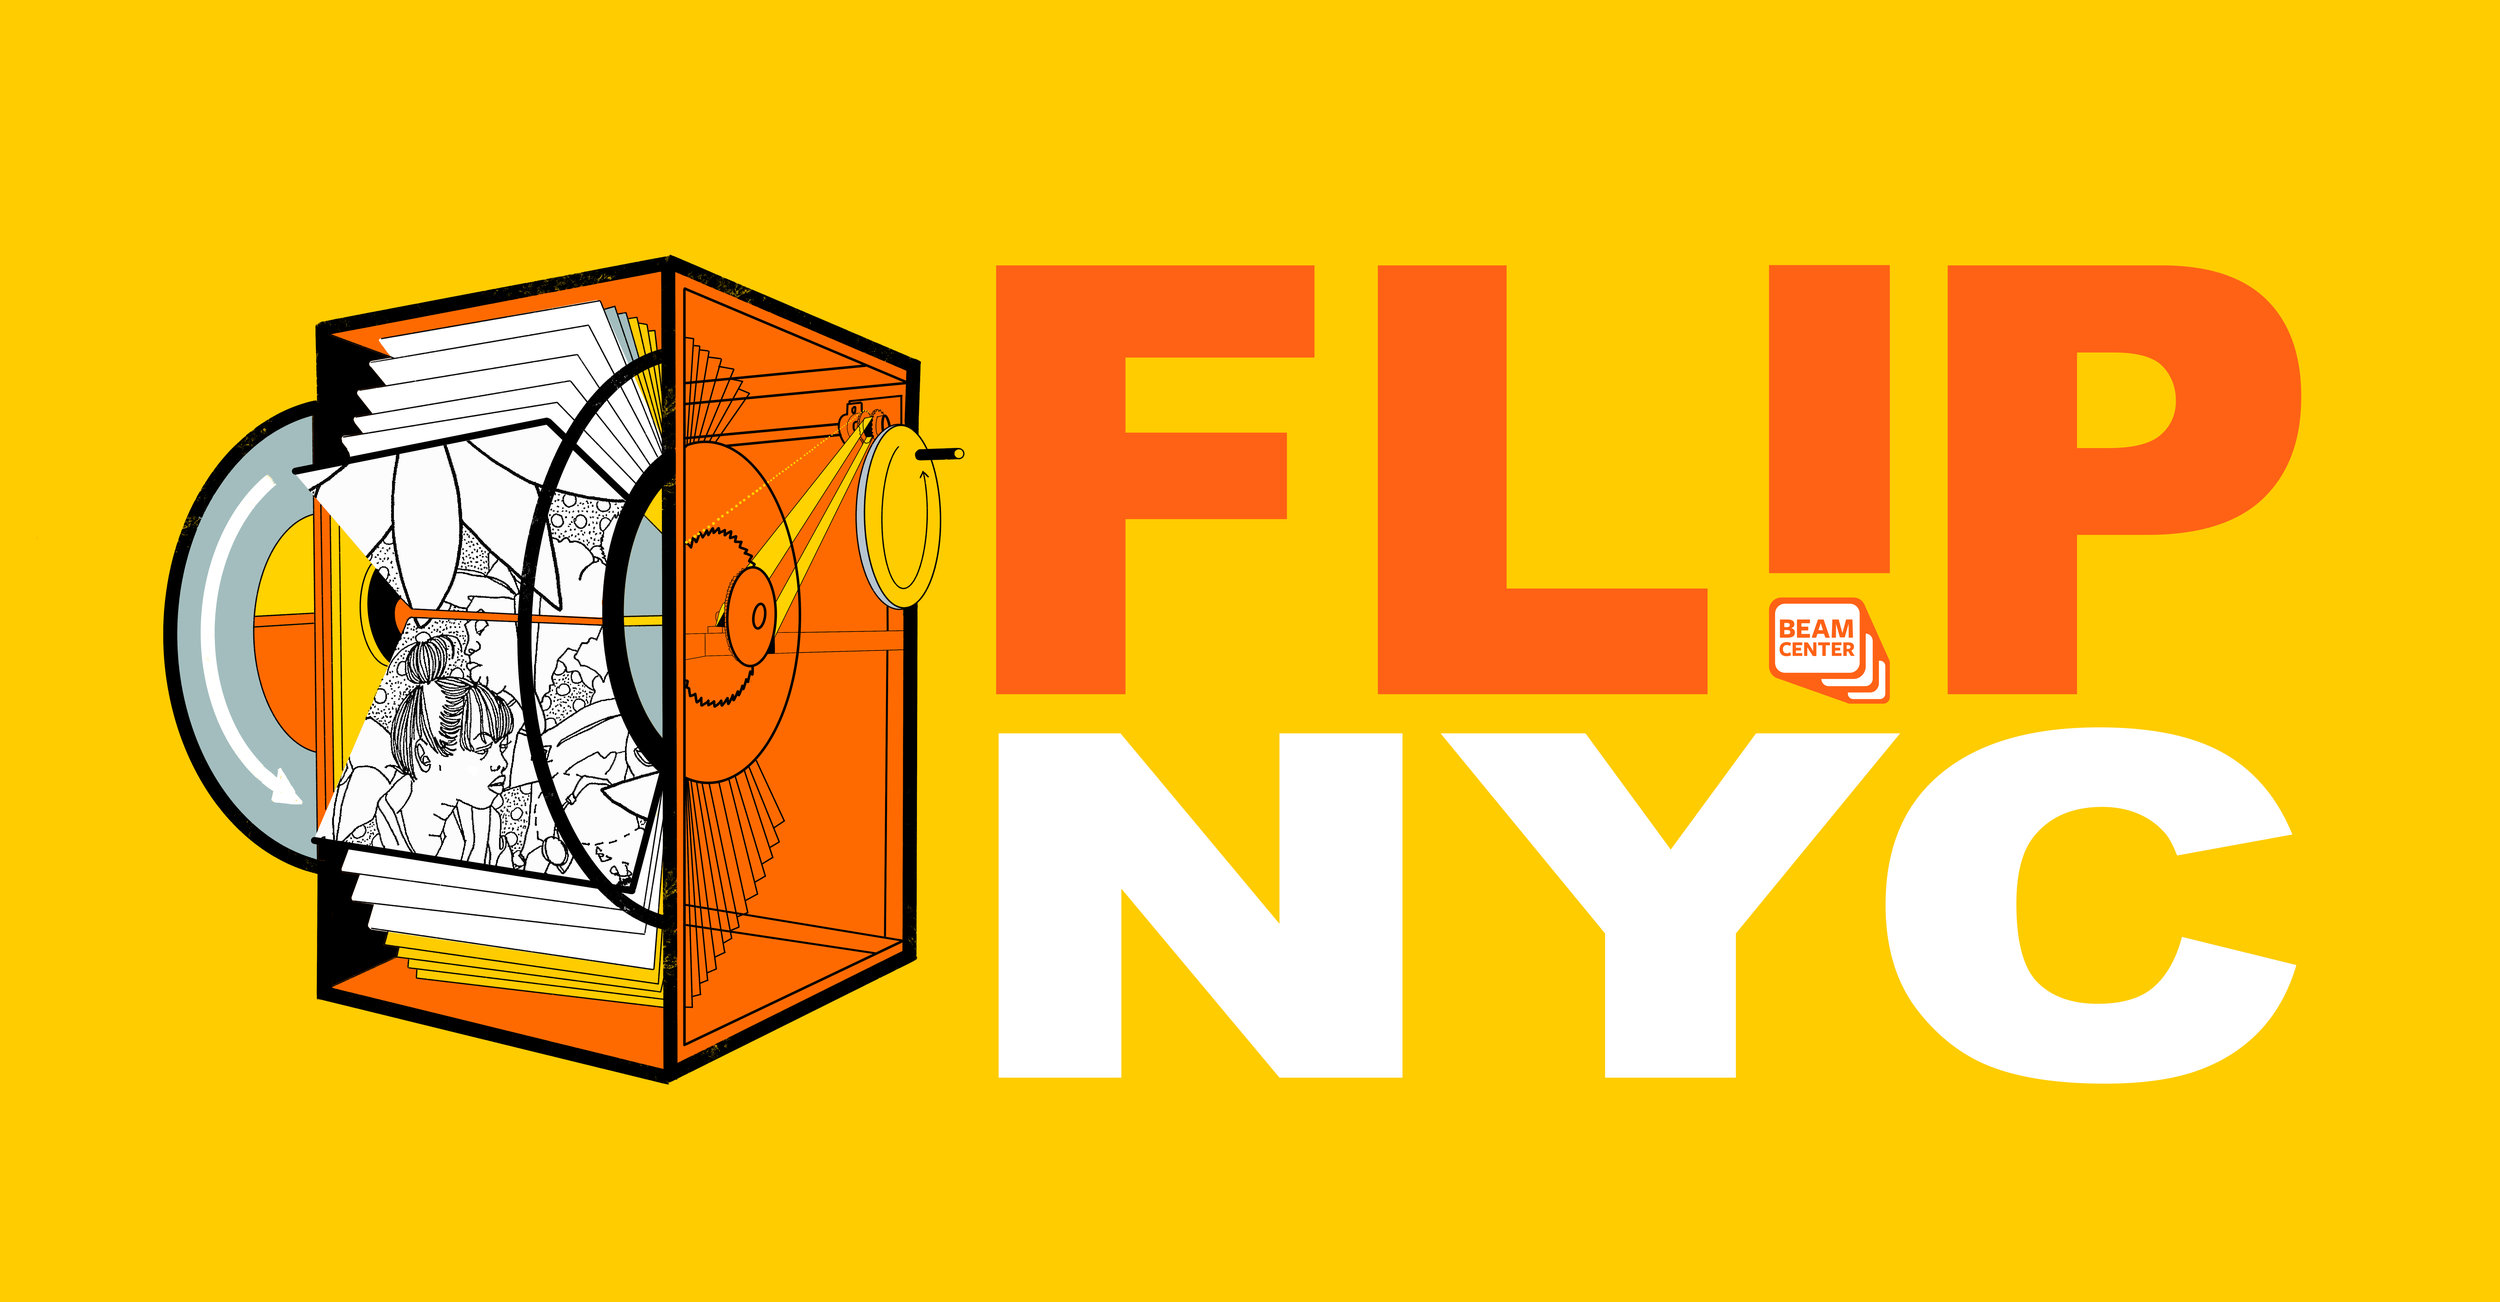 FLIP NYC LOGO AND MACHINE wide.jpg